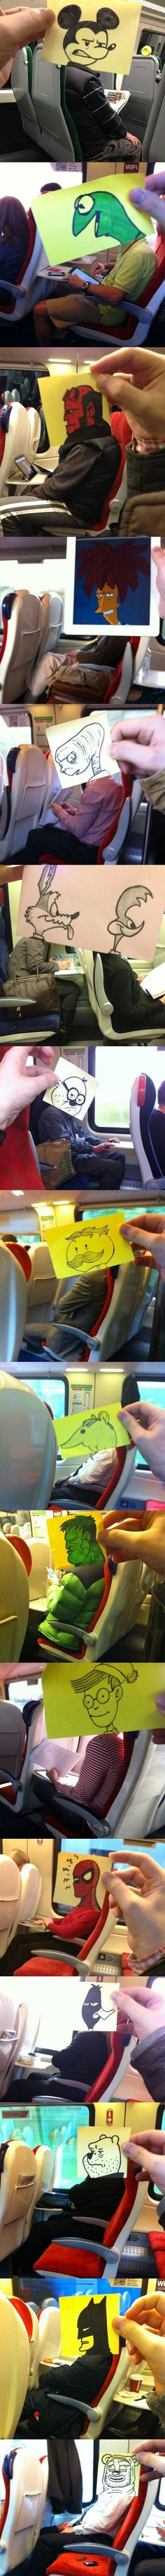 How to pass time on the train When you know how to draw. too cute!